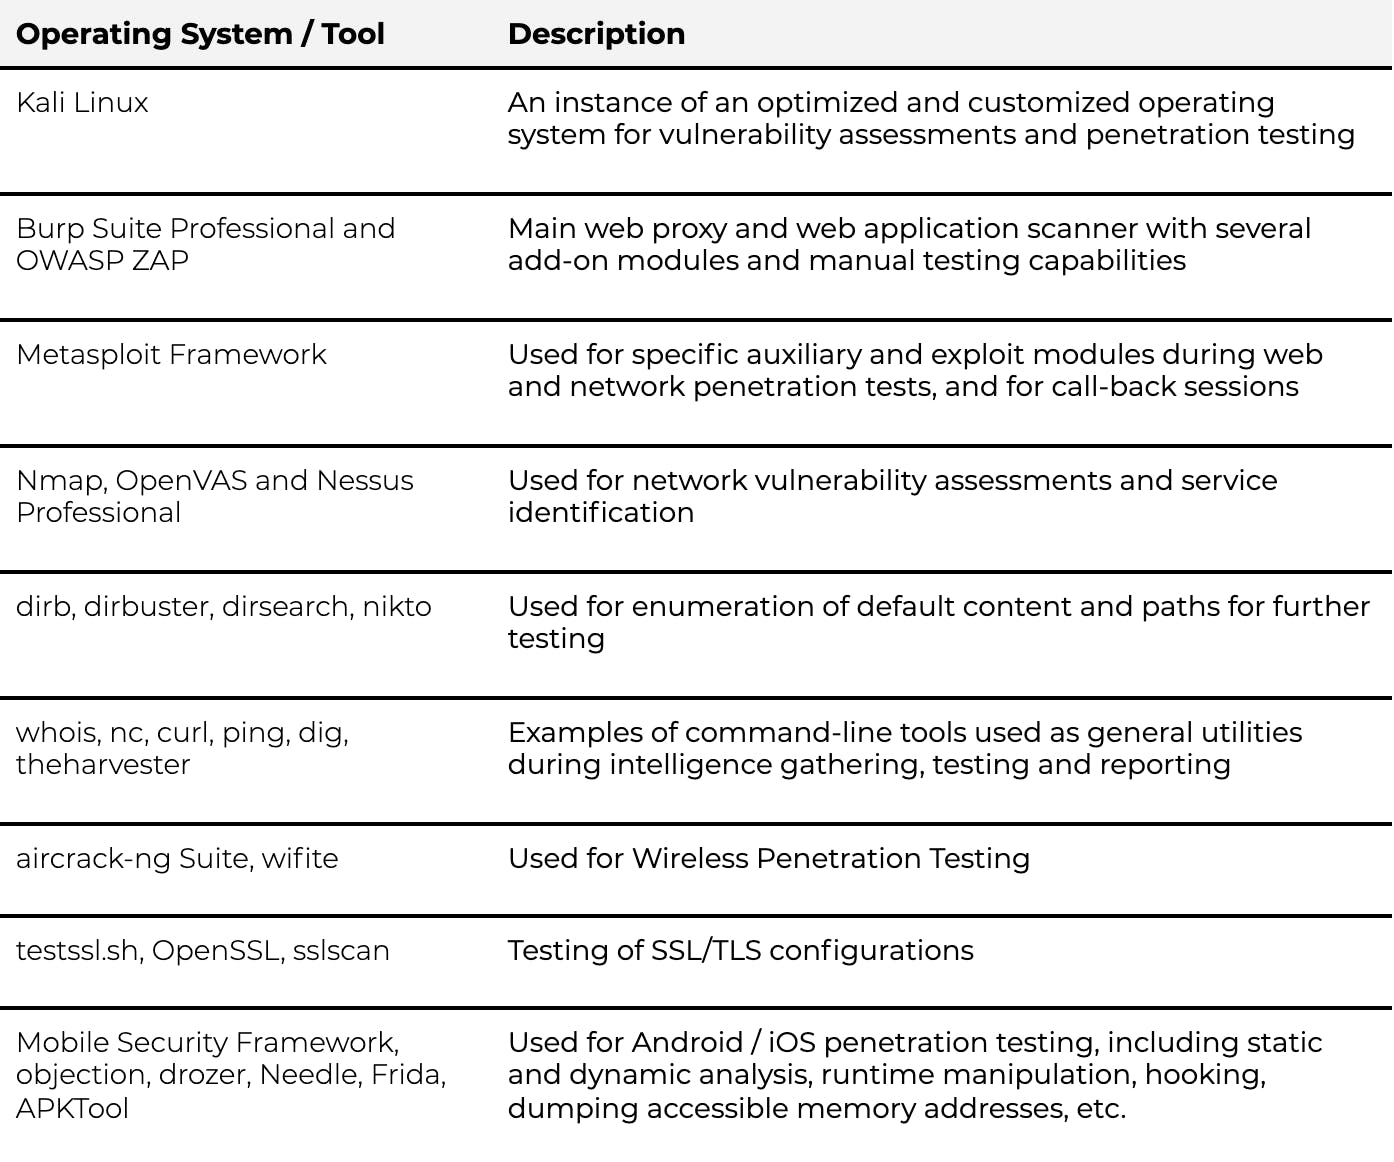 Table of operating systems and security tools